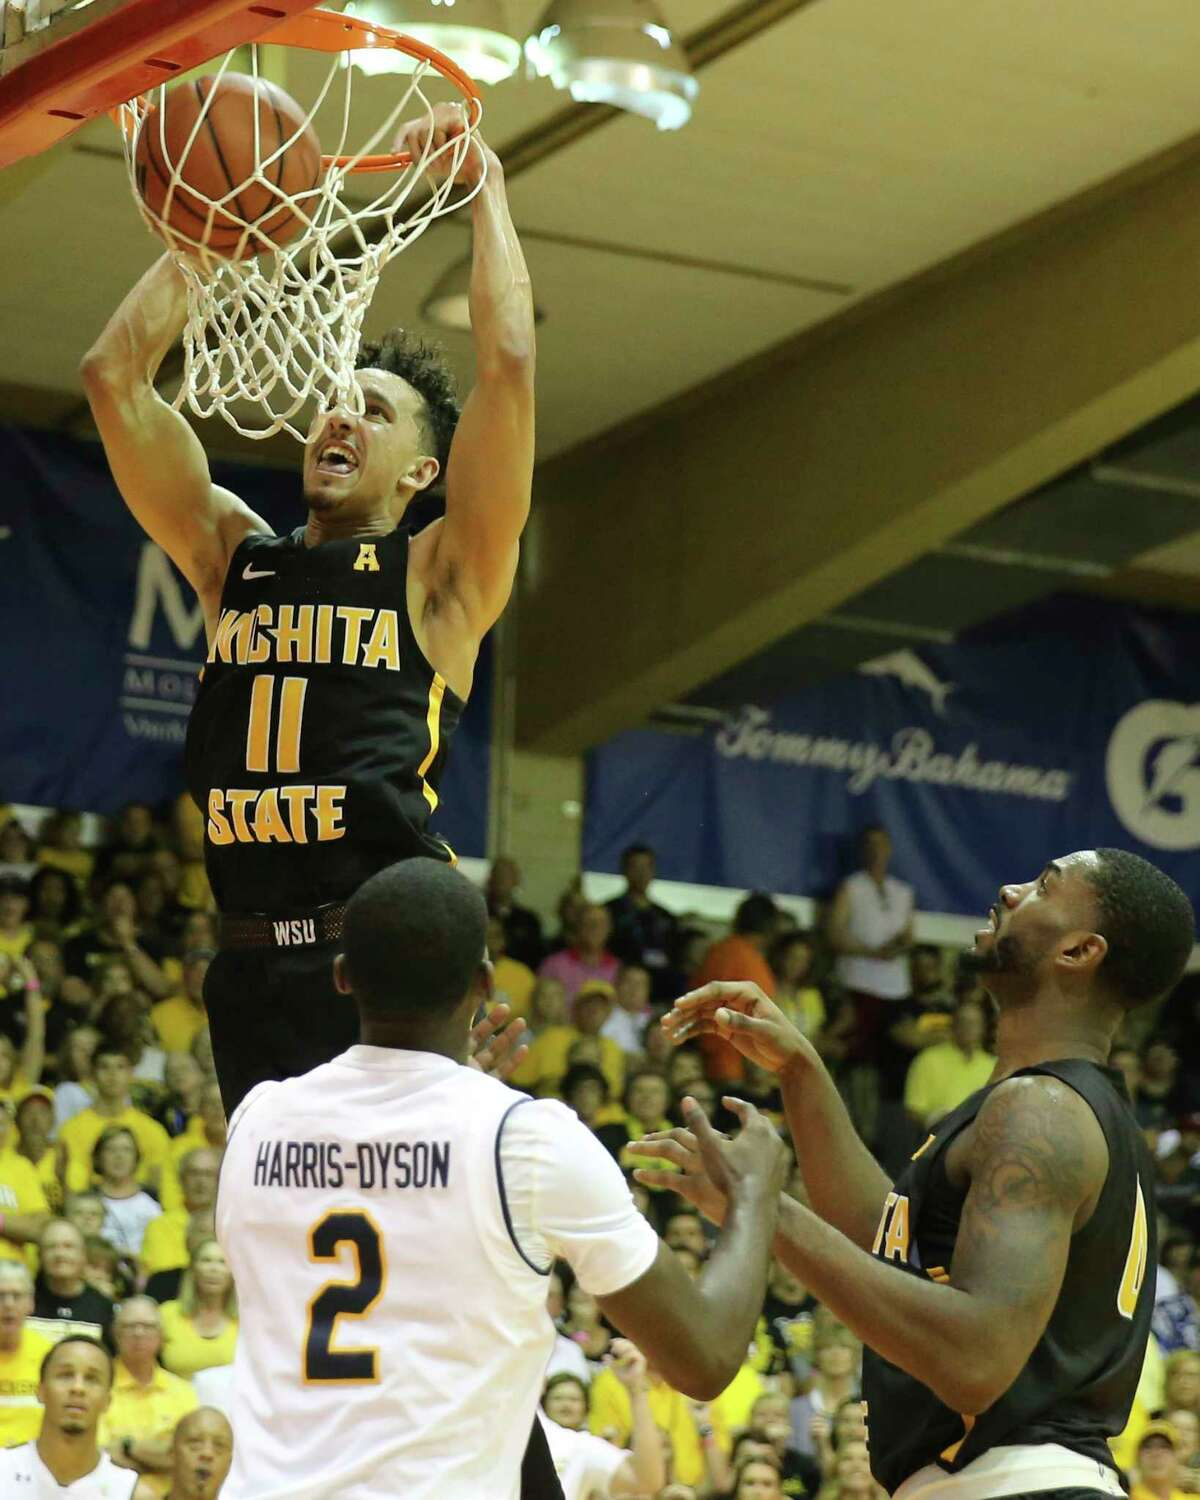 Wichita State guard Landry Shamet (11) dunks the ball during the second half of an NCAA college basketball game, Monday, Nov. 20, 2017, in Lahaina, Hawaii. (AP Photo/Marco Garcia) ORG XMIT: HIMG134